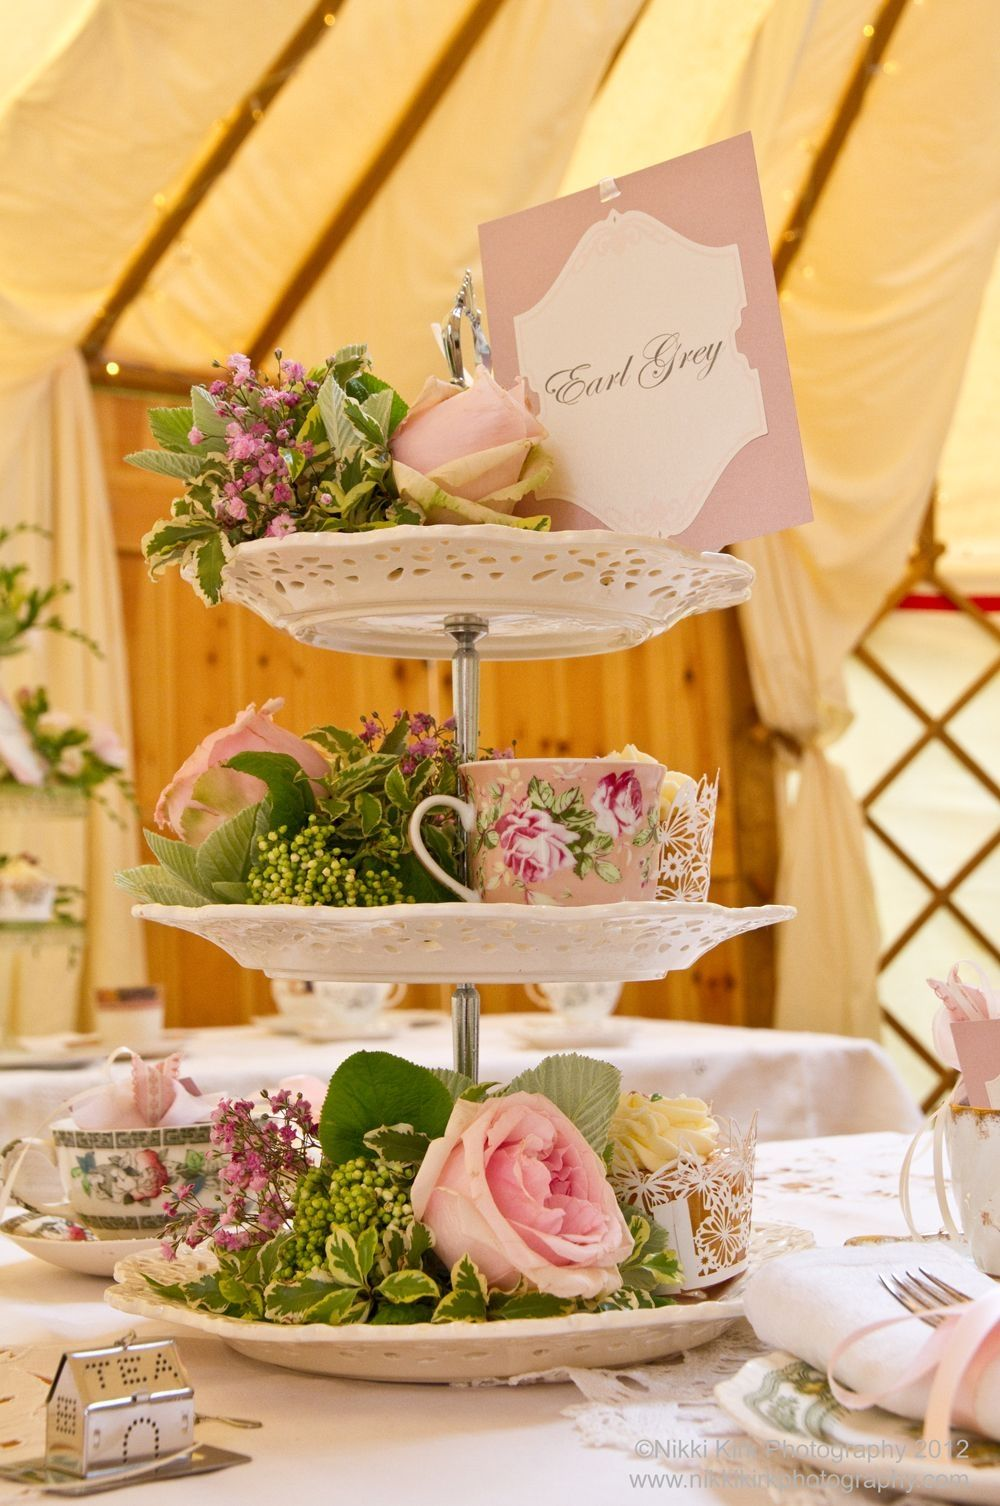 Have a lovely afternoon tea wedding at pentillie castle in cornwall have a lovely afternoon tea wedding at pentillie castle in cornwall pentillie vintage wedding centerpieceswedding table decorationschristening junglespirit Choice Image